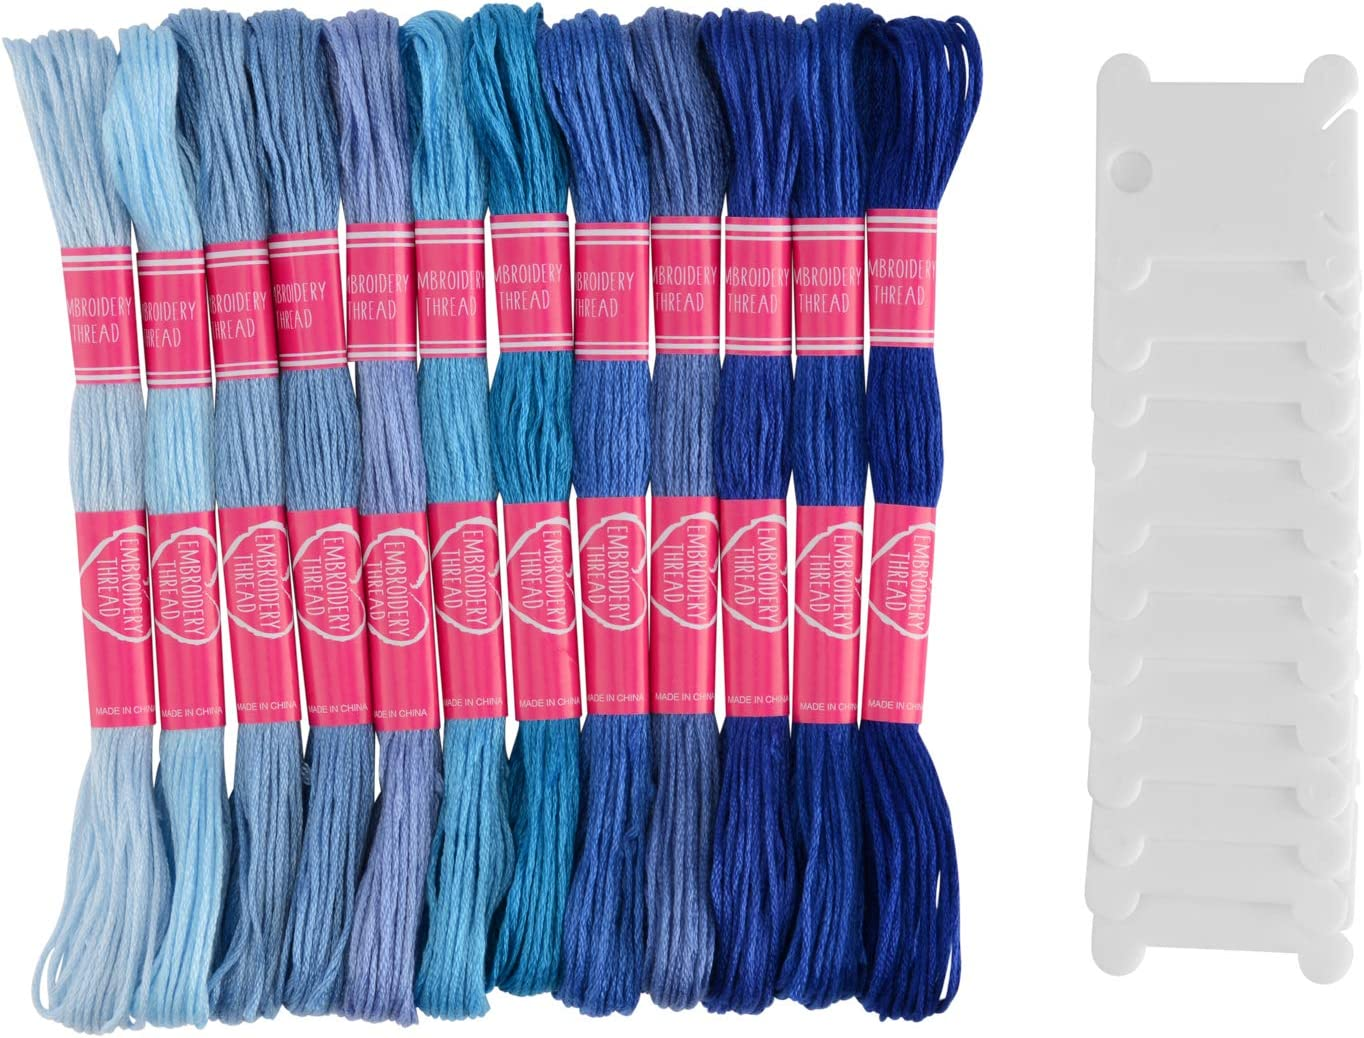 Cross Stitch Threads Friendship Bracelets Floss with 6 Floss Bobbins 2 Embroidery Needles and 1 Needle Threader for Cross Stitch Project Pllieay 24 Skeins Green Gradient Embroidery Floss